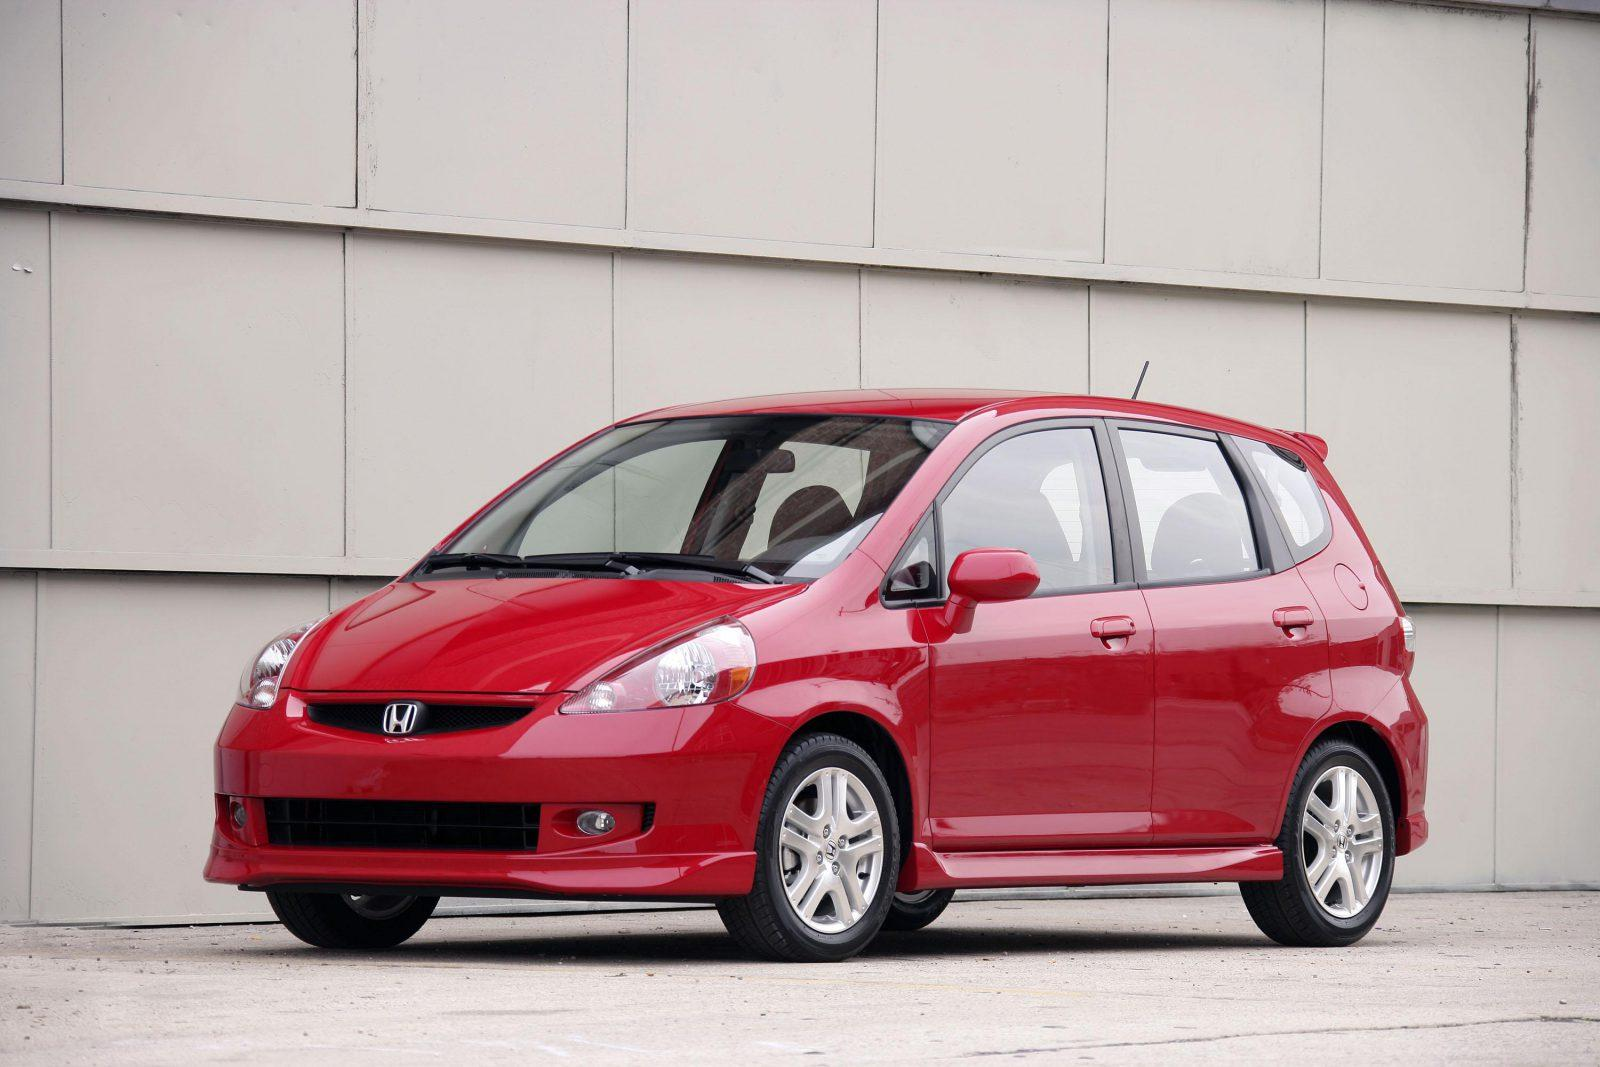 2008 Honda Fit Review A Quick Simple And Affordable Car